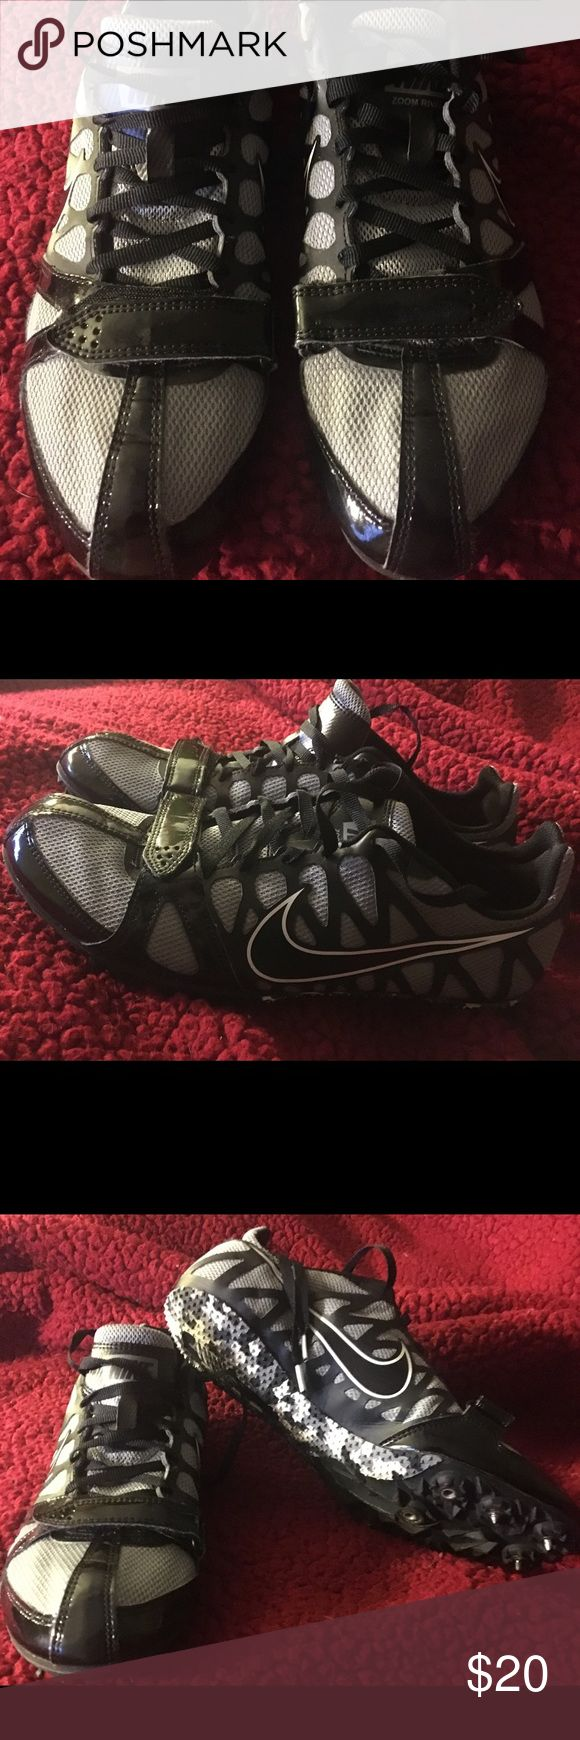 Nike Track & Field Sprint shoes Nike Track snd Field Sprint. Mens size 8. Only wore 5 times. Great shape! Nike Shoes Athletic Shoes